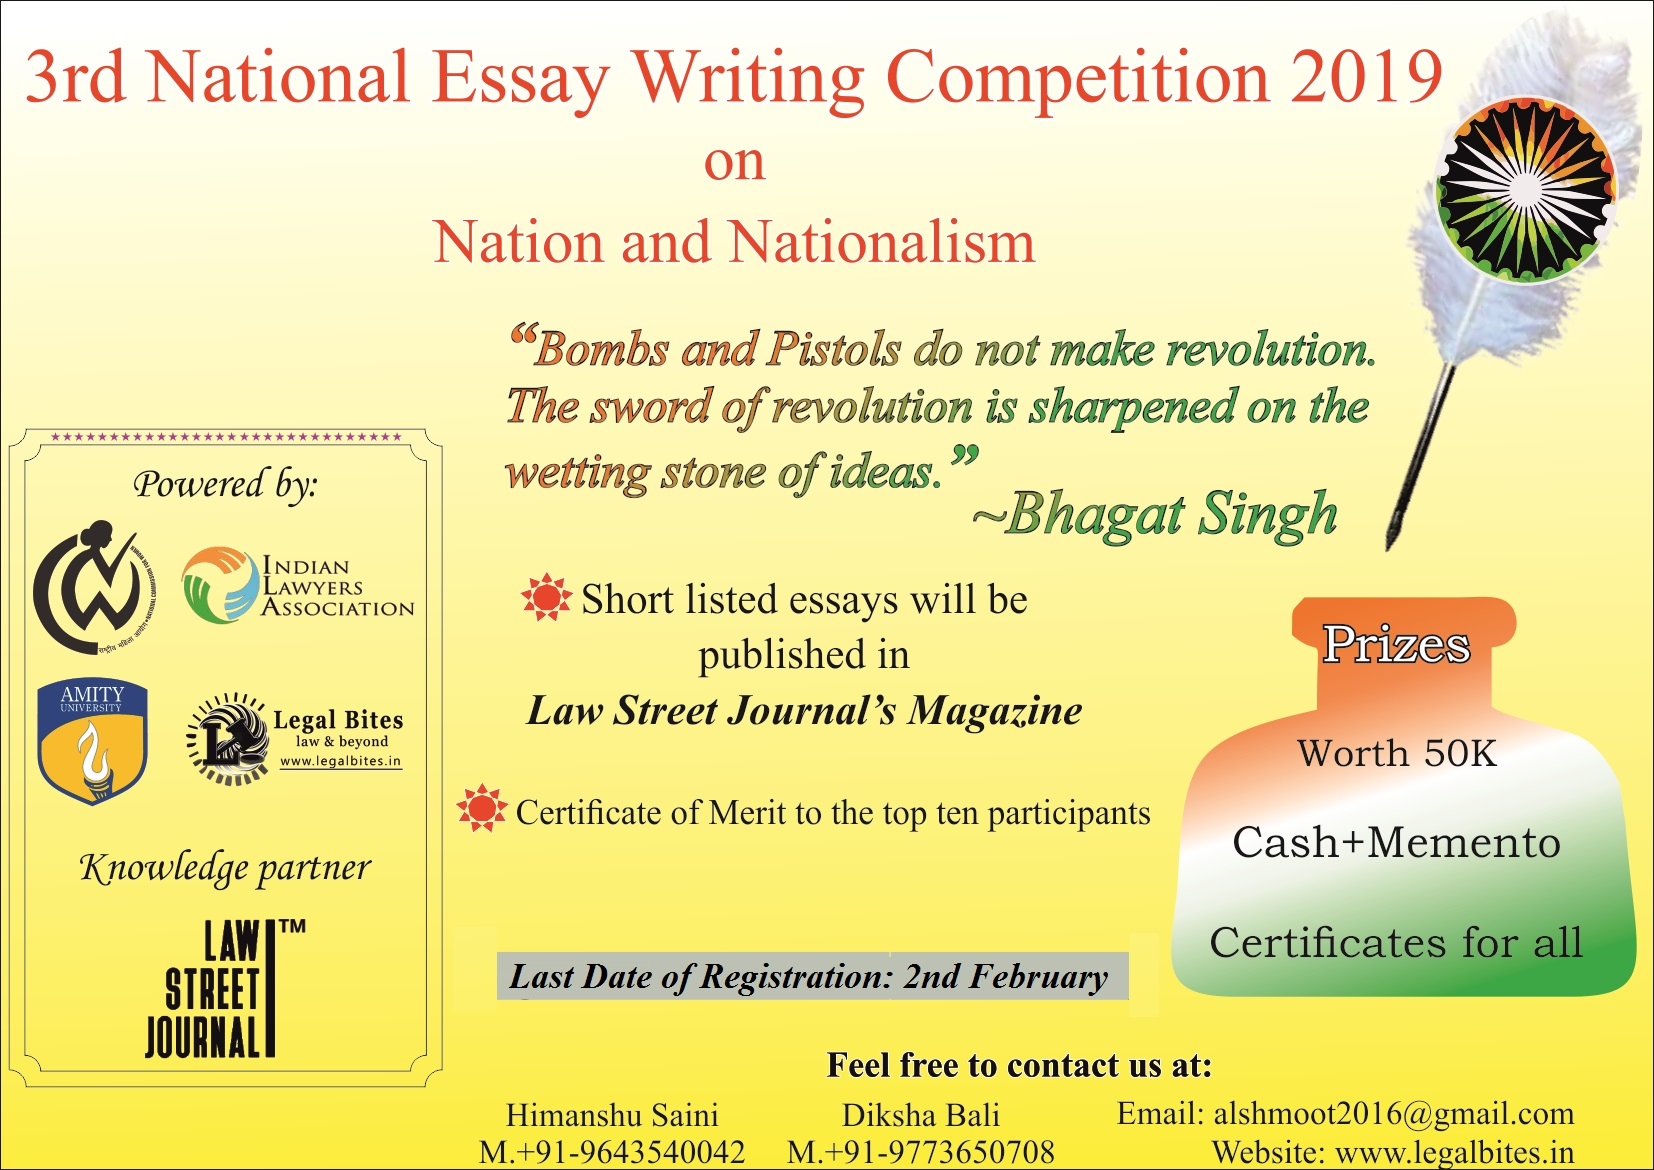 3rd National Essay Writing Competition on Nation and Nationalism, 2019